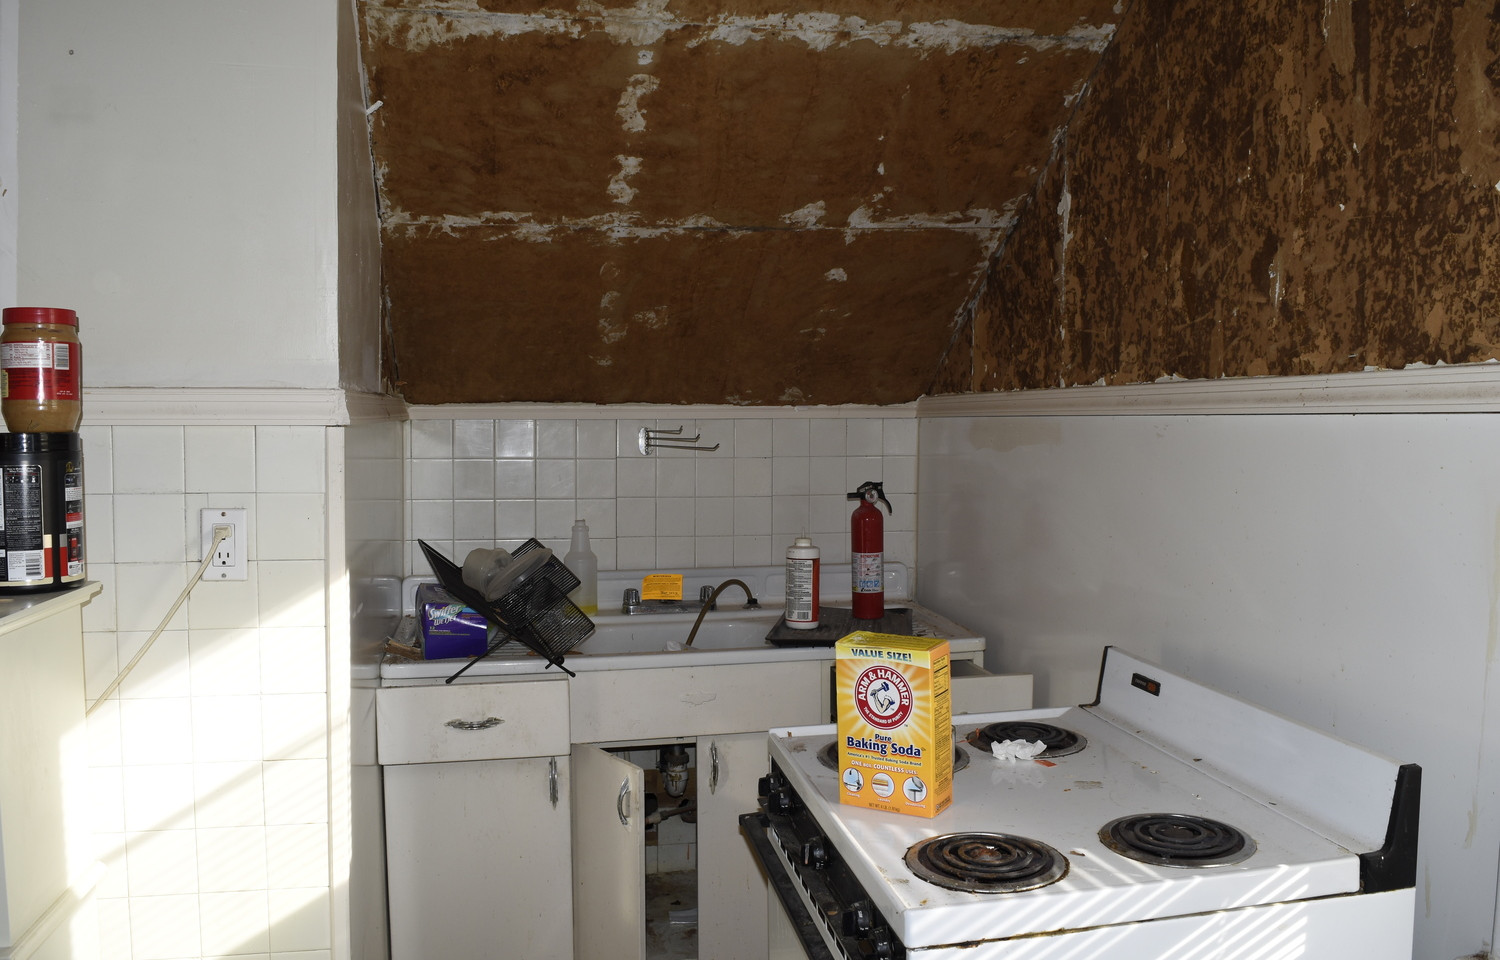 19.0 Apartment 2 Kitchen.jpg